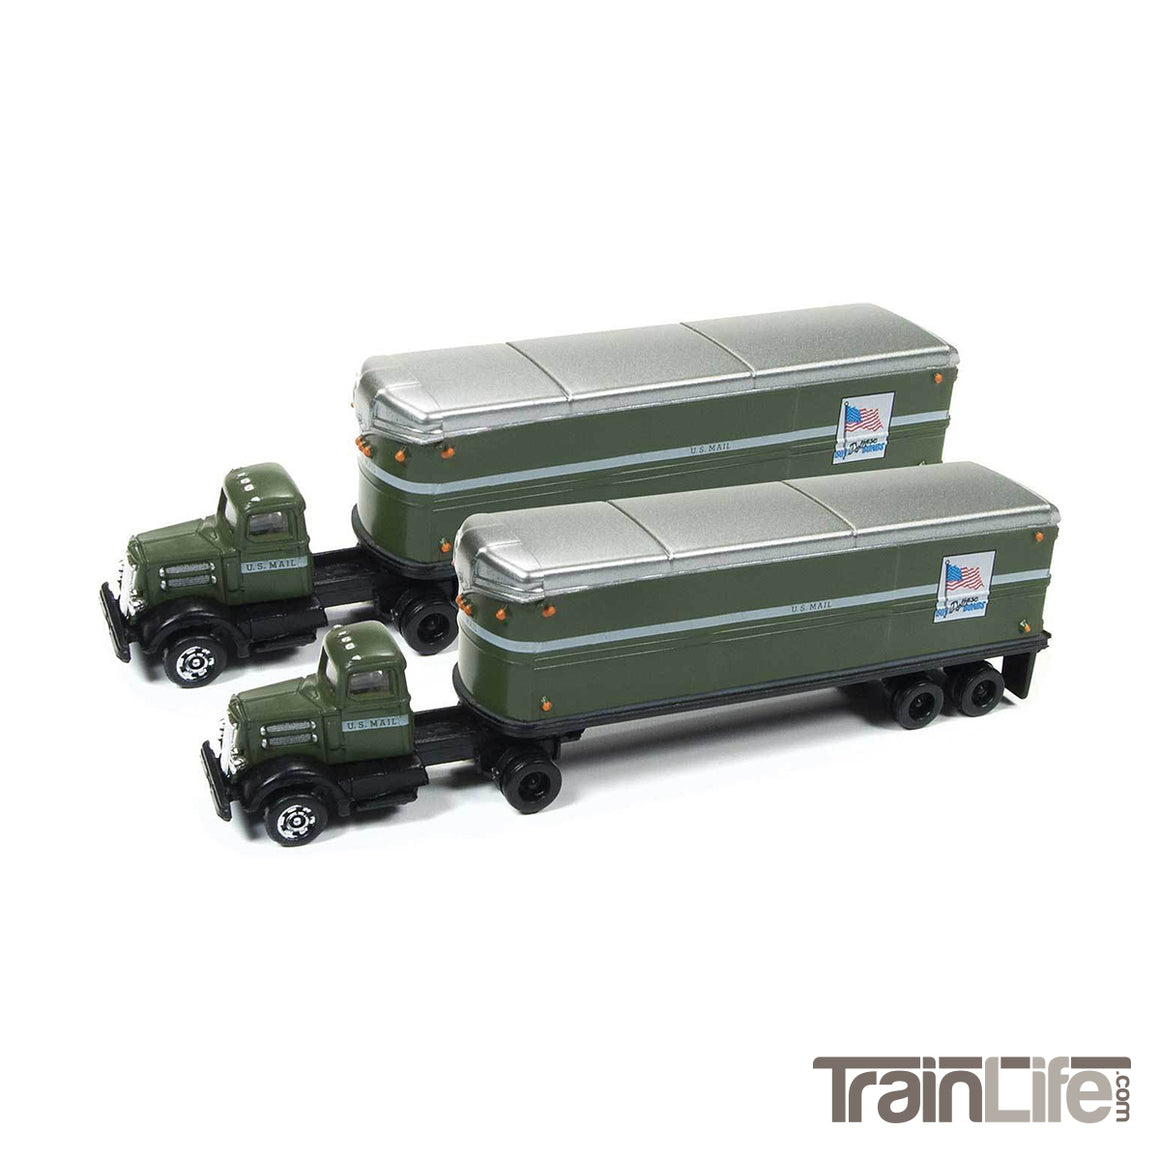 N Scale: WC22 Tractor & Trailer Set - United States Postal - 2 Pack